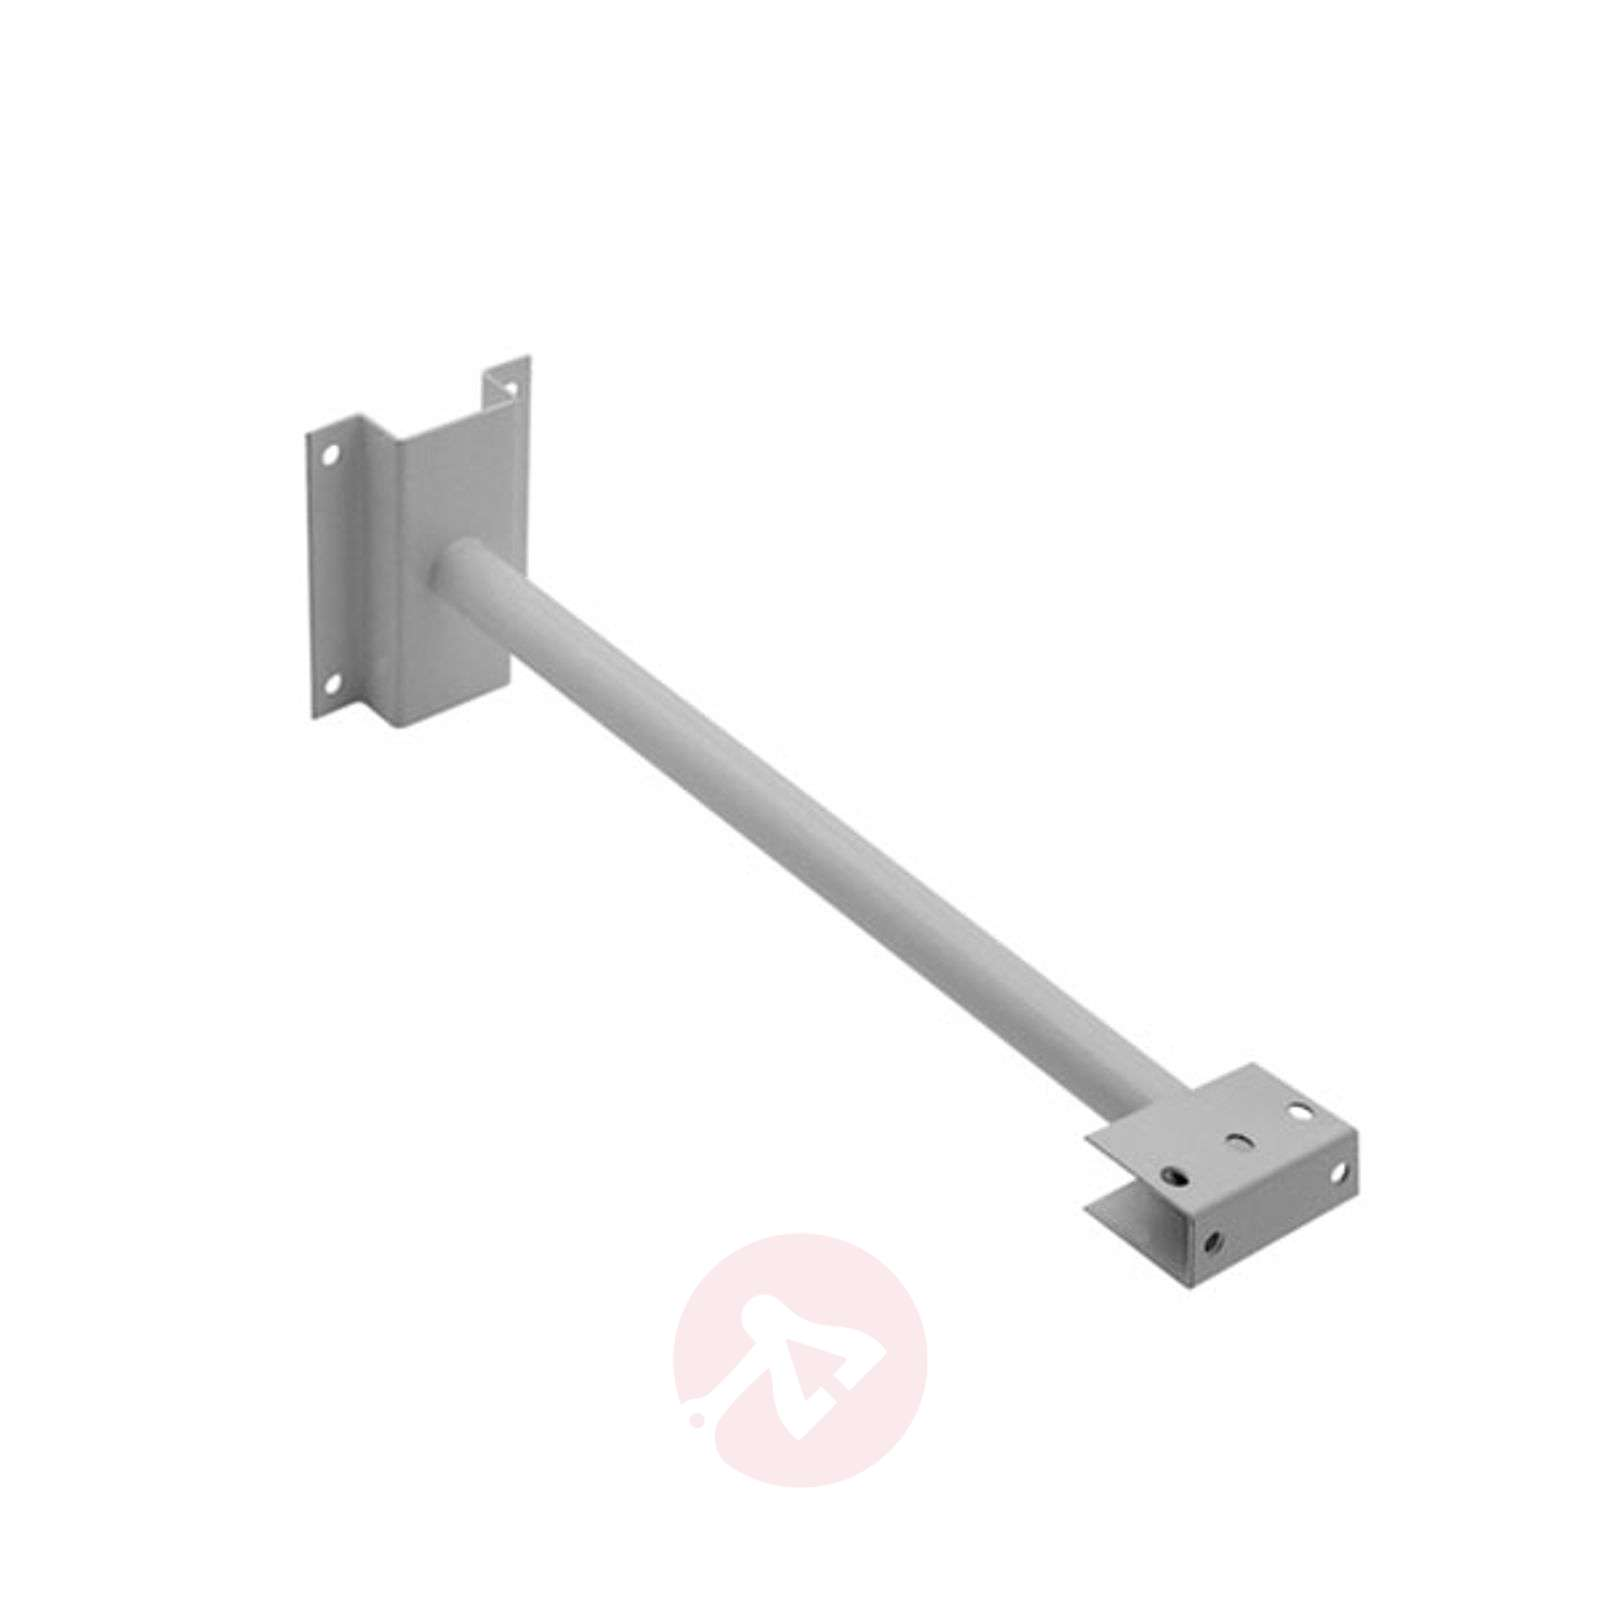 Support mural pour spot LED Guell 1/2 50 cm-8542079-01